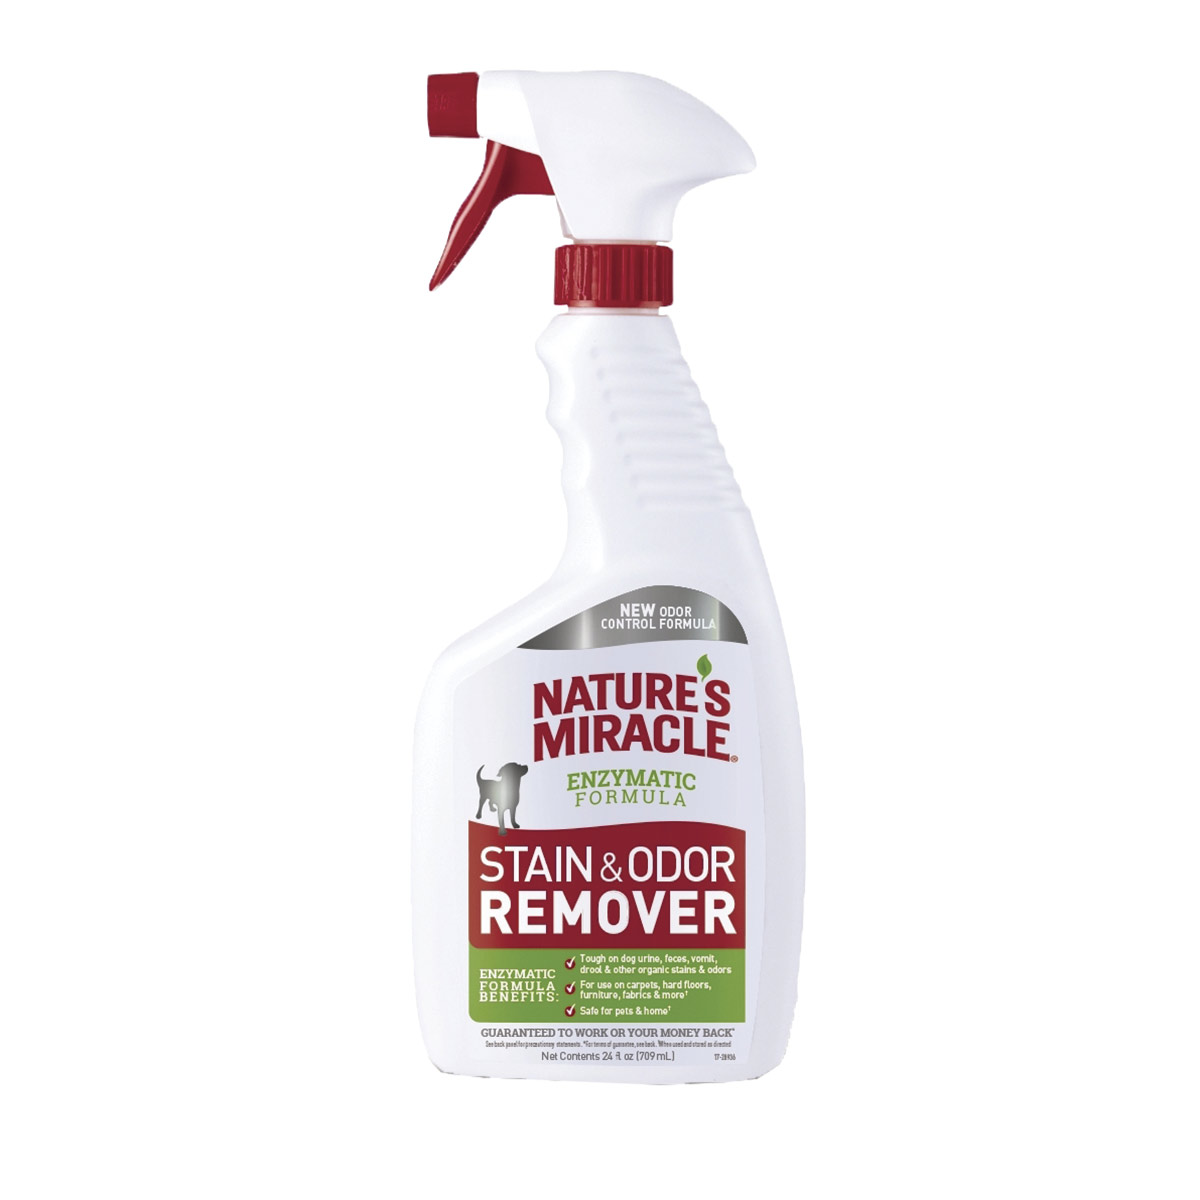 Nature's Miracle Stain & Odor Remover - Enzymatic Formula 24 oz